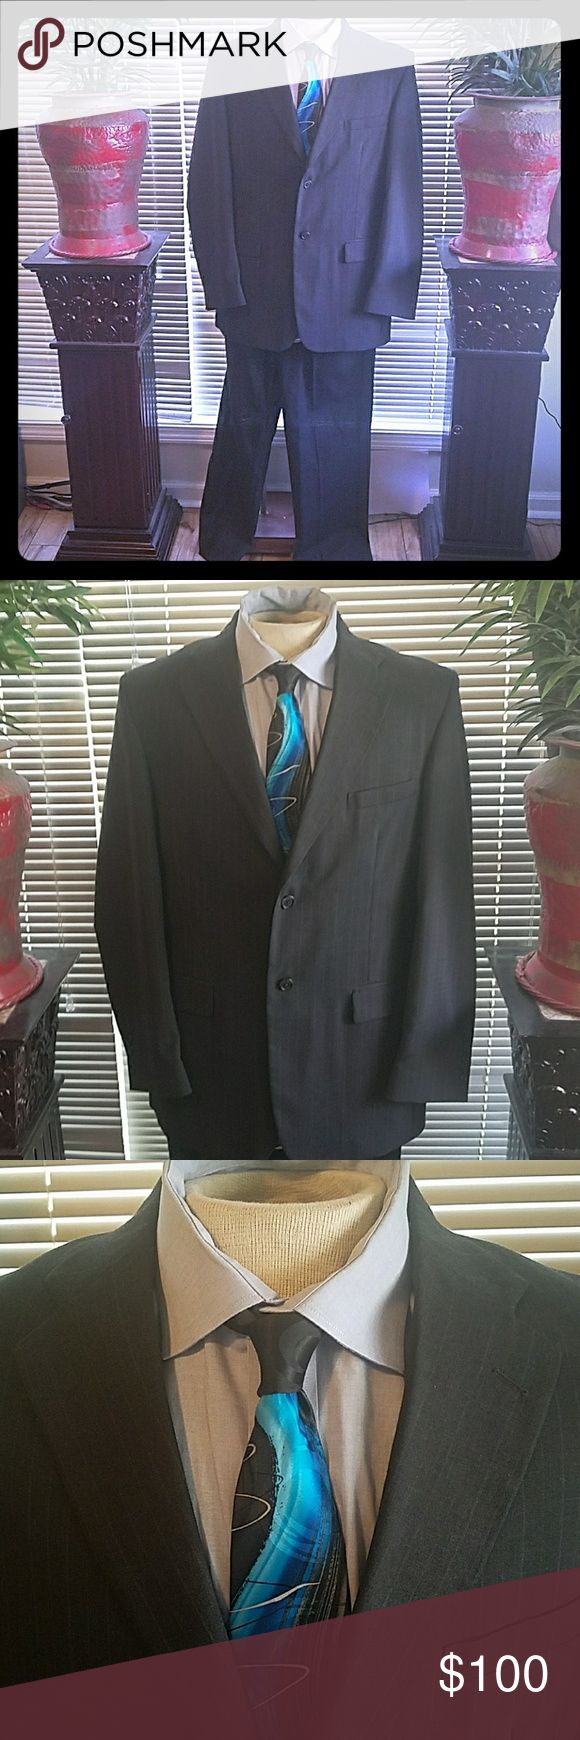 Complete Mens TowneCraft Suit (42L)RLaurenShirt(L) This is an excellent gently used entire towncraft men's gray pinstripe (maroon and white stripes that are very subtle) suit size 42L (Approx 36/32-34 Pants) in excellent like new condition. It has a Ralph Lauren classic fit non- iron 17 1/2 neck-32/33 sleeves and a J Garcia tie. It is from a pet free and smoke-free home. This is excellent for the businessman or church. TowneCraft Suits & Blazers Suits